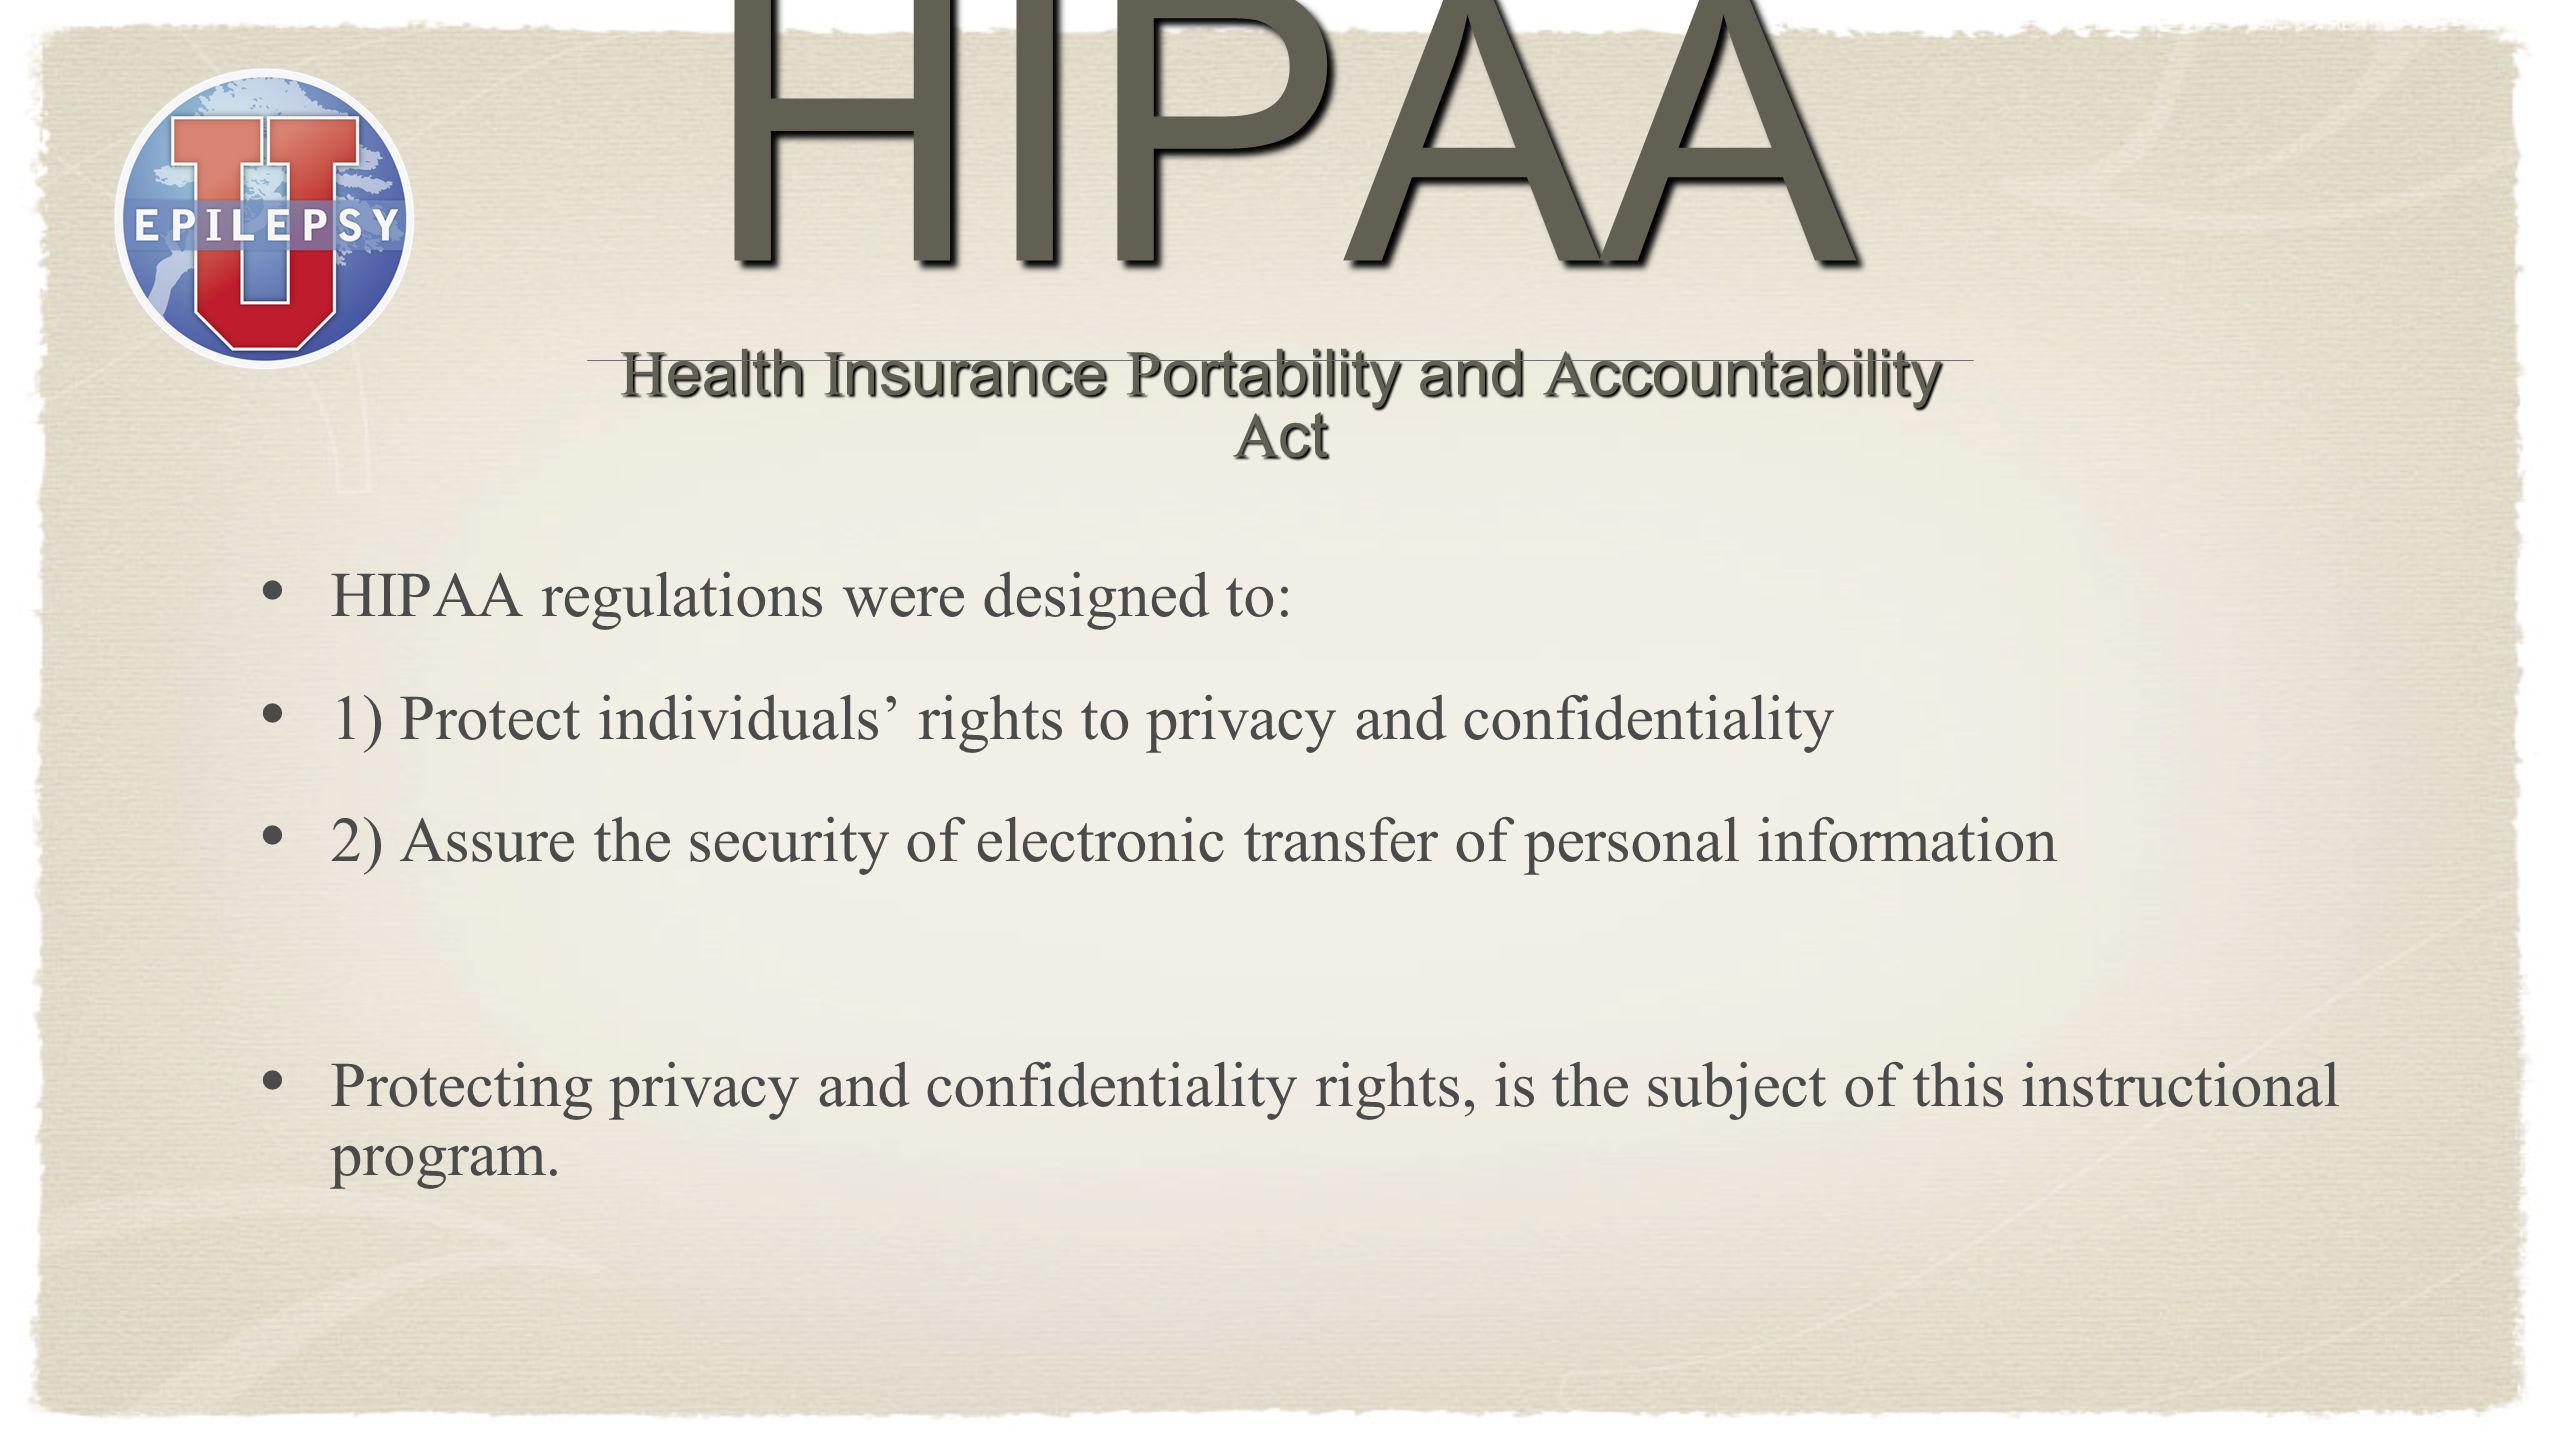 HIPAA regulations were designed to: 1) Protect individuals rights to privacy and confidentiality 2) Assure the security of electronic transfer of pers